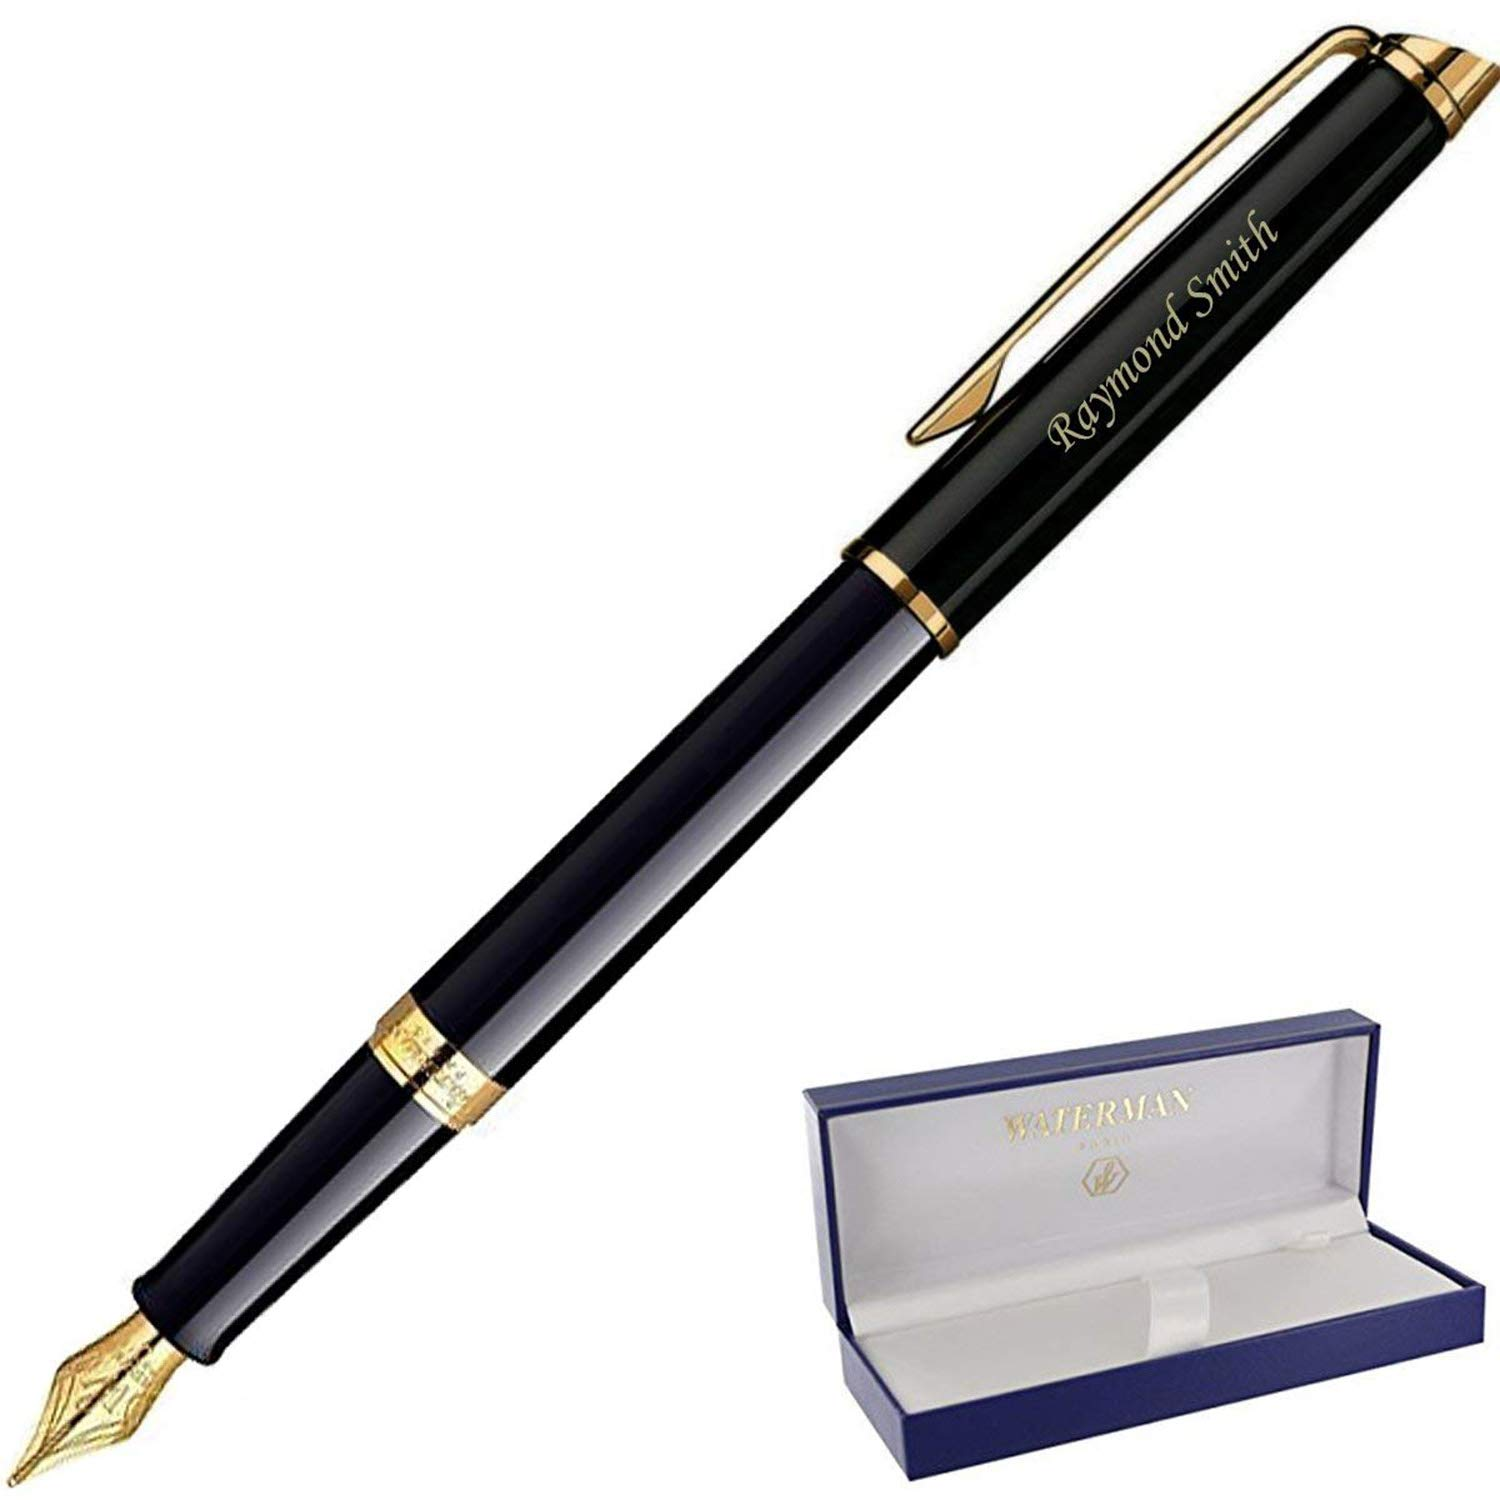 Dayspring Pens | Personalized WATERMAN Hemisphere Fountain Pen Medium Nib - Black. Custom Engraved Fast, with Waterman pen gift case and starter ink. by Dayspring Pens (Image #1)